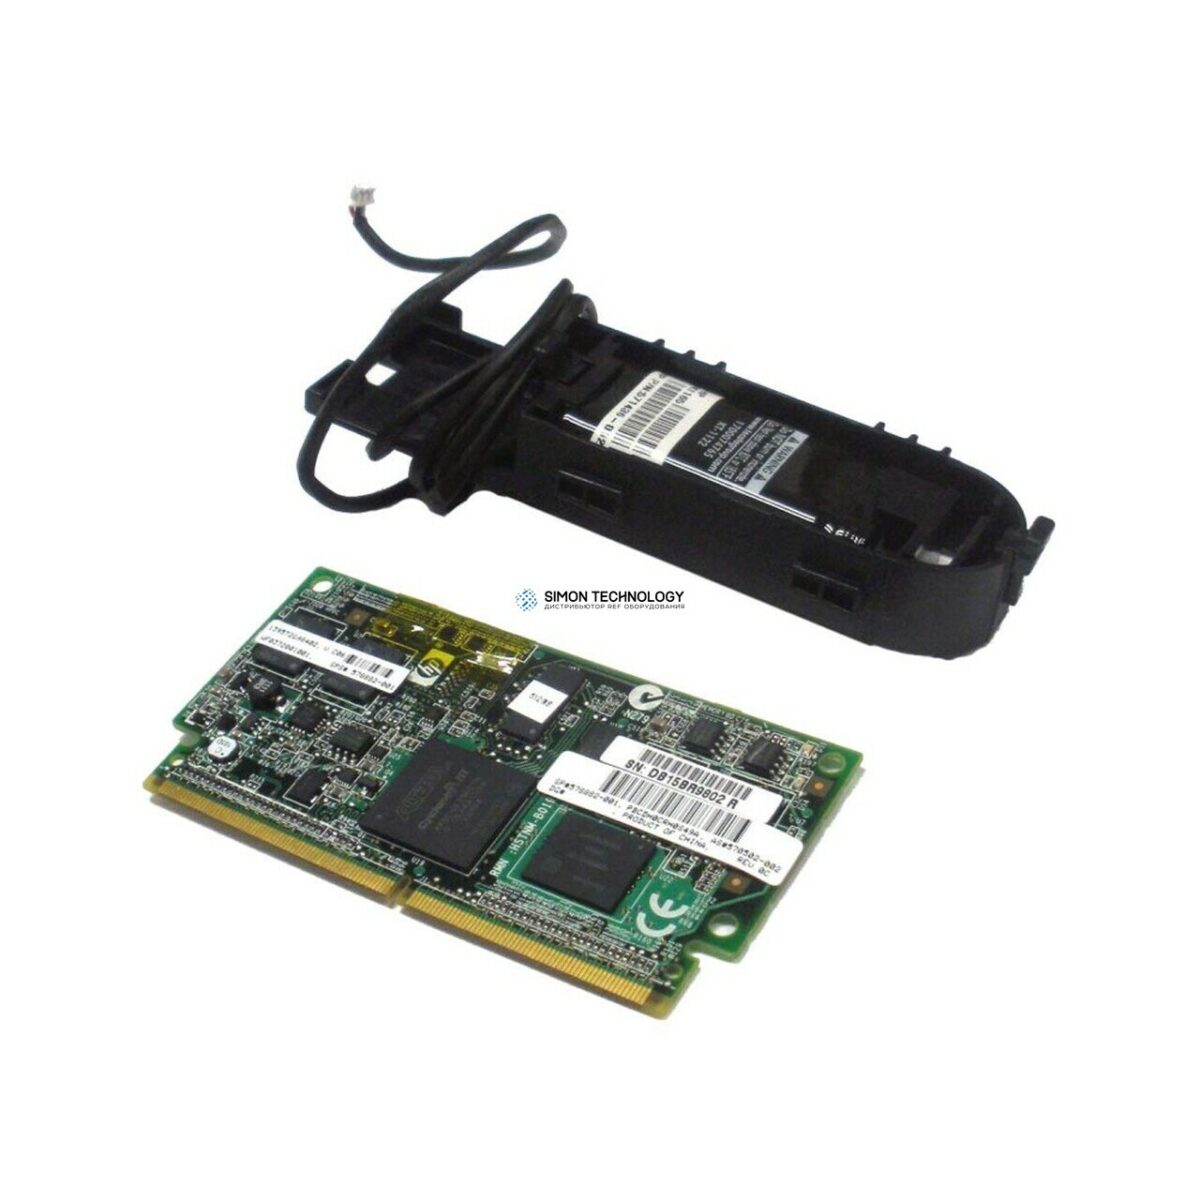 HPE - RX2800 SA 512MB CACHE/BATTERY KIT (AM252A)